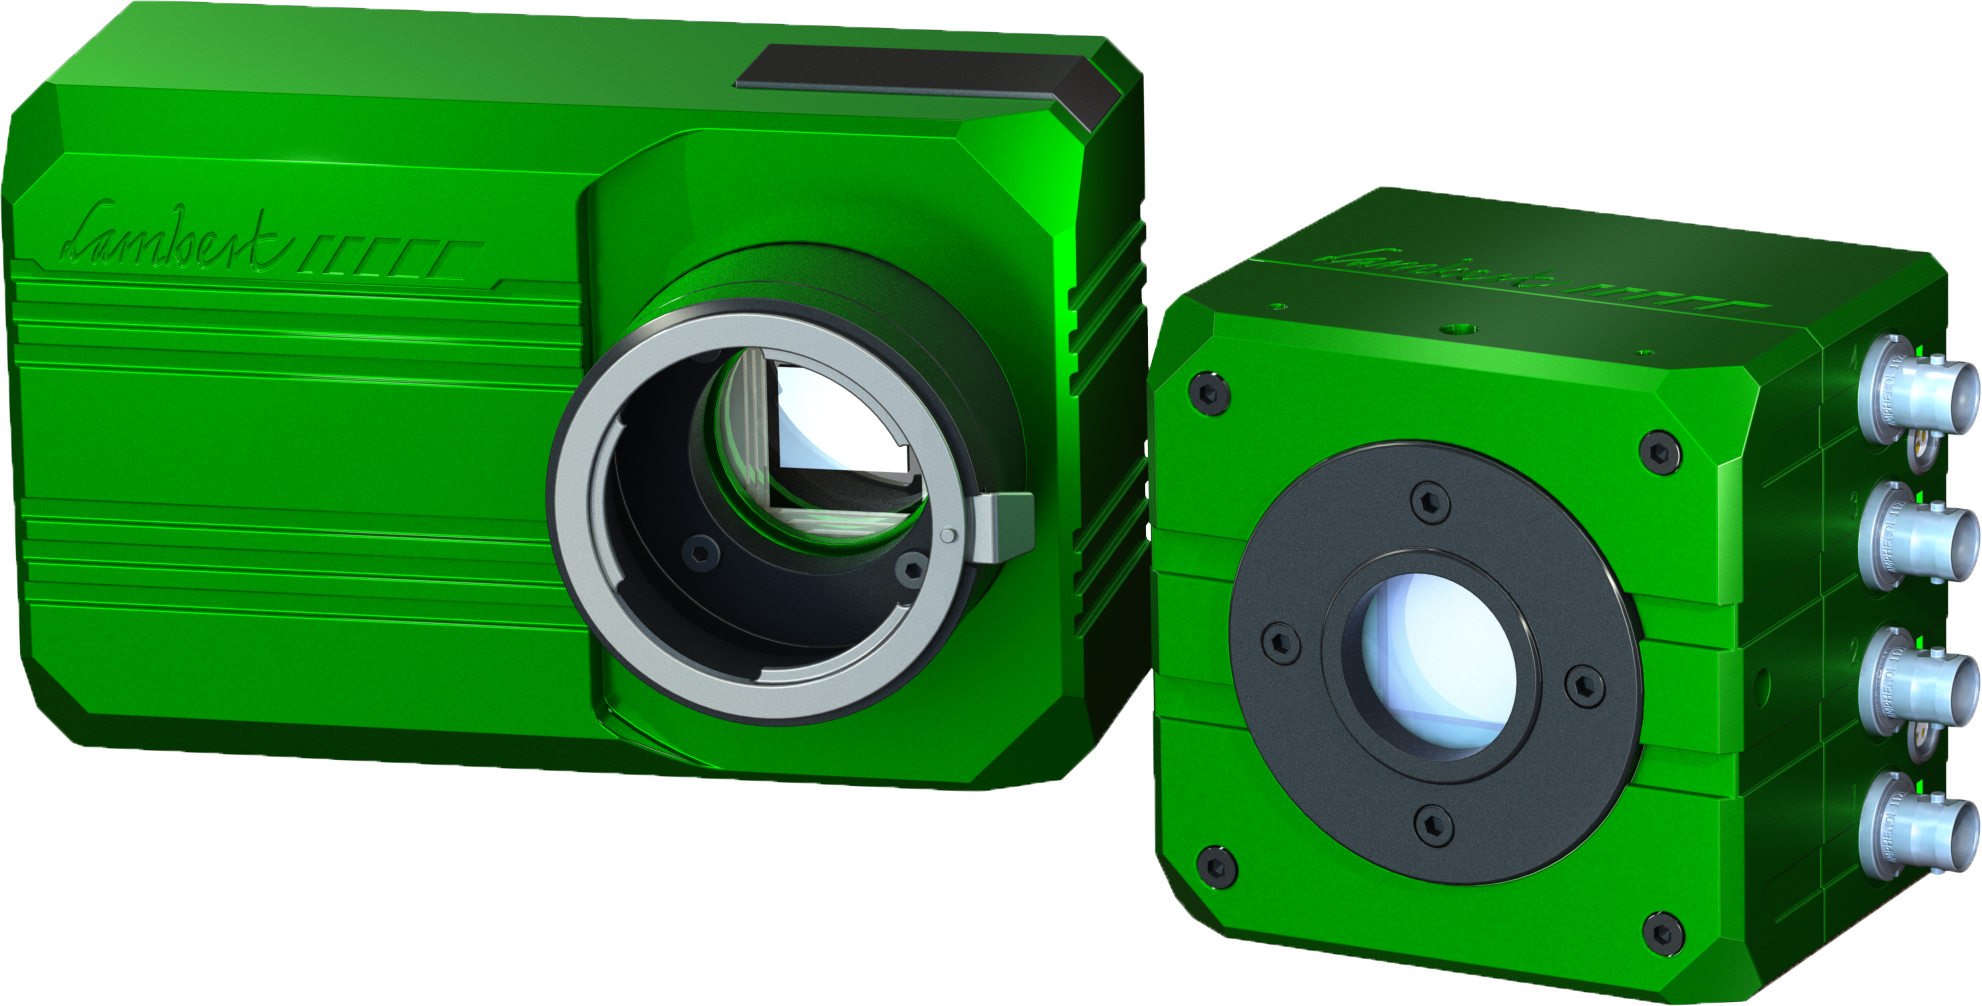 The Lambert HS540 Series is a family of high-speed (CMOS) cameras that offer high-speed imaging solutions for scientific research, R&D, machine vision and other industrial applications